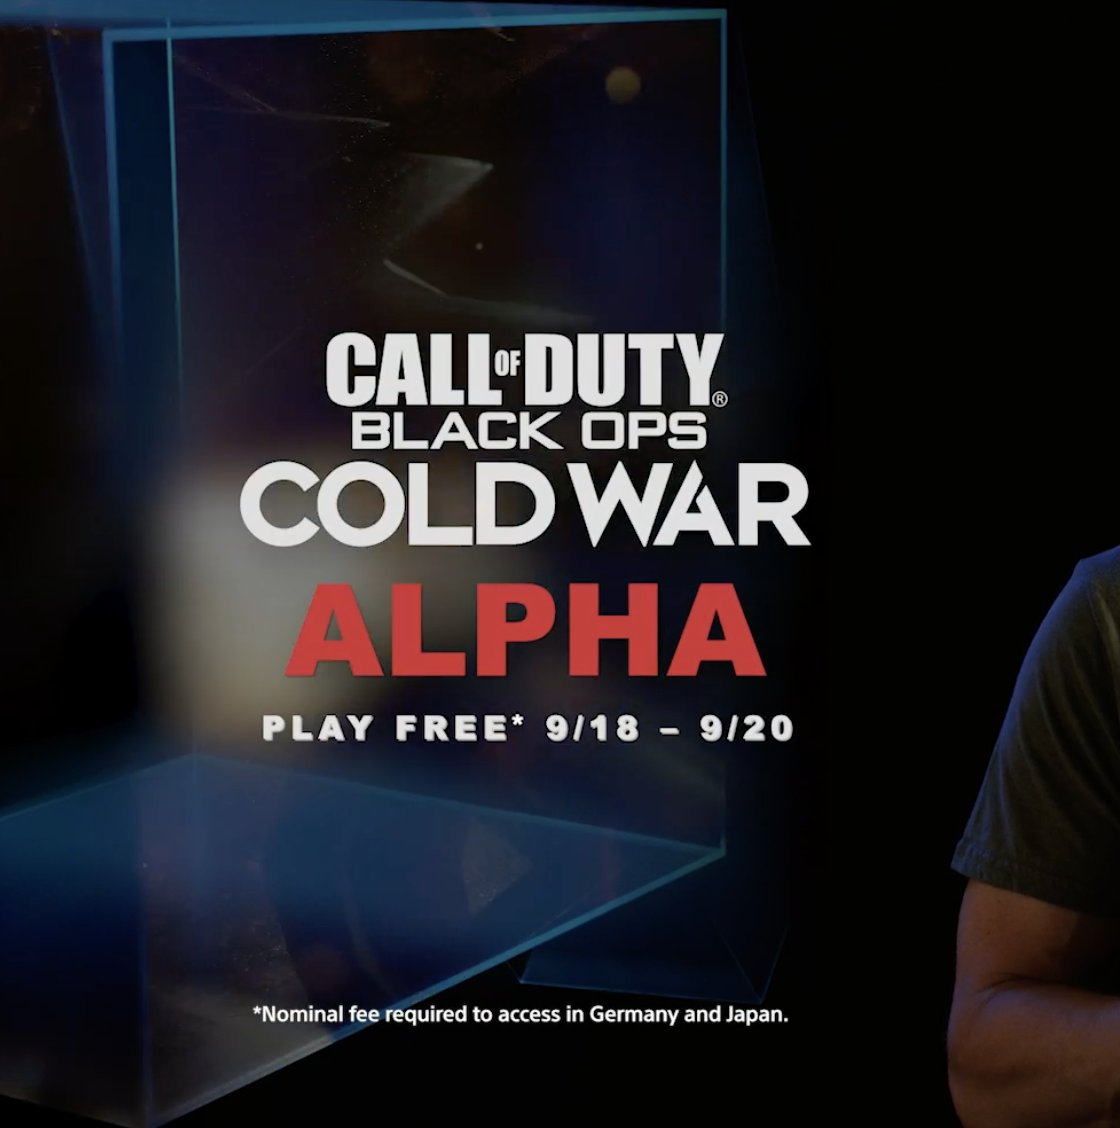 BREAKING: Black Ops Cold War Open Alpha ONLY on PS4  Begins Friday, ends Sunday https://t.co/uD7yeYkTnQ https://t.co/42HM9sVkjo